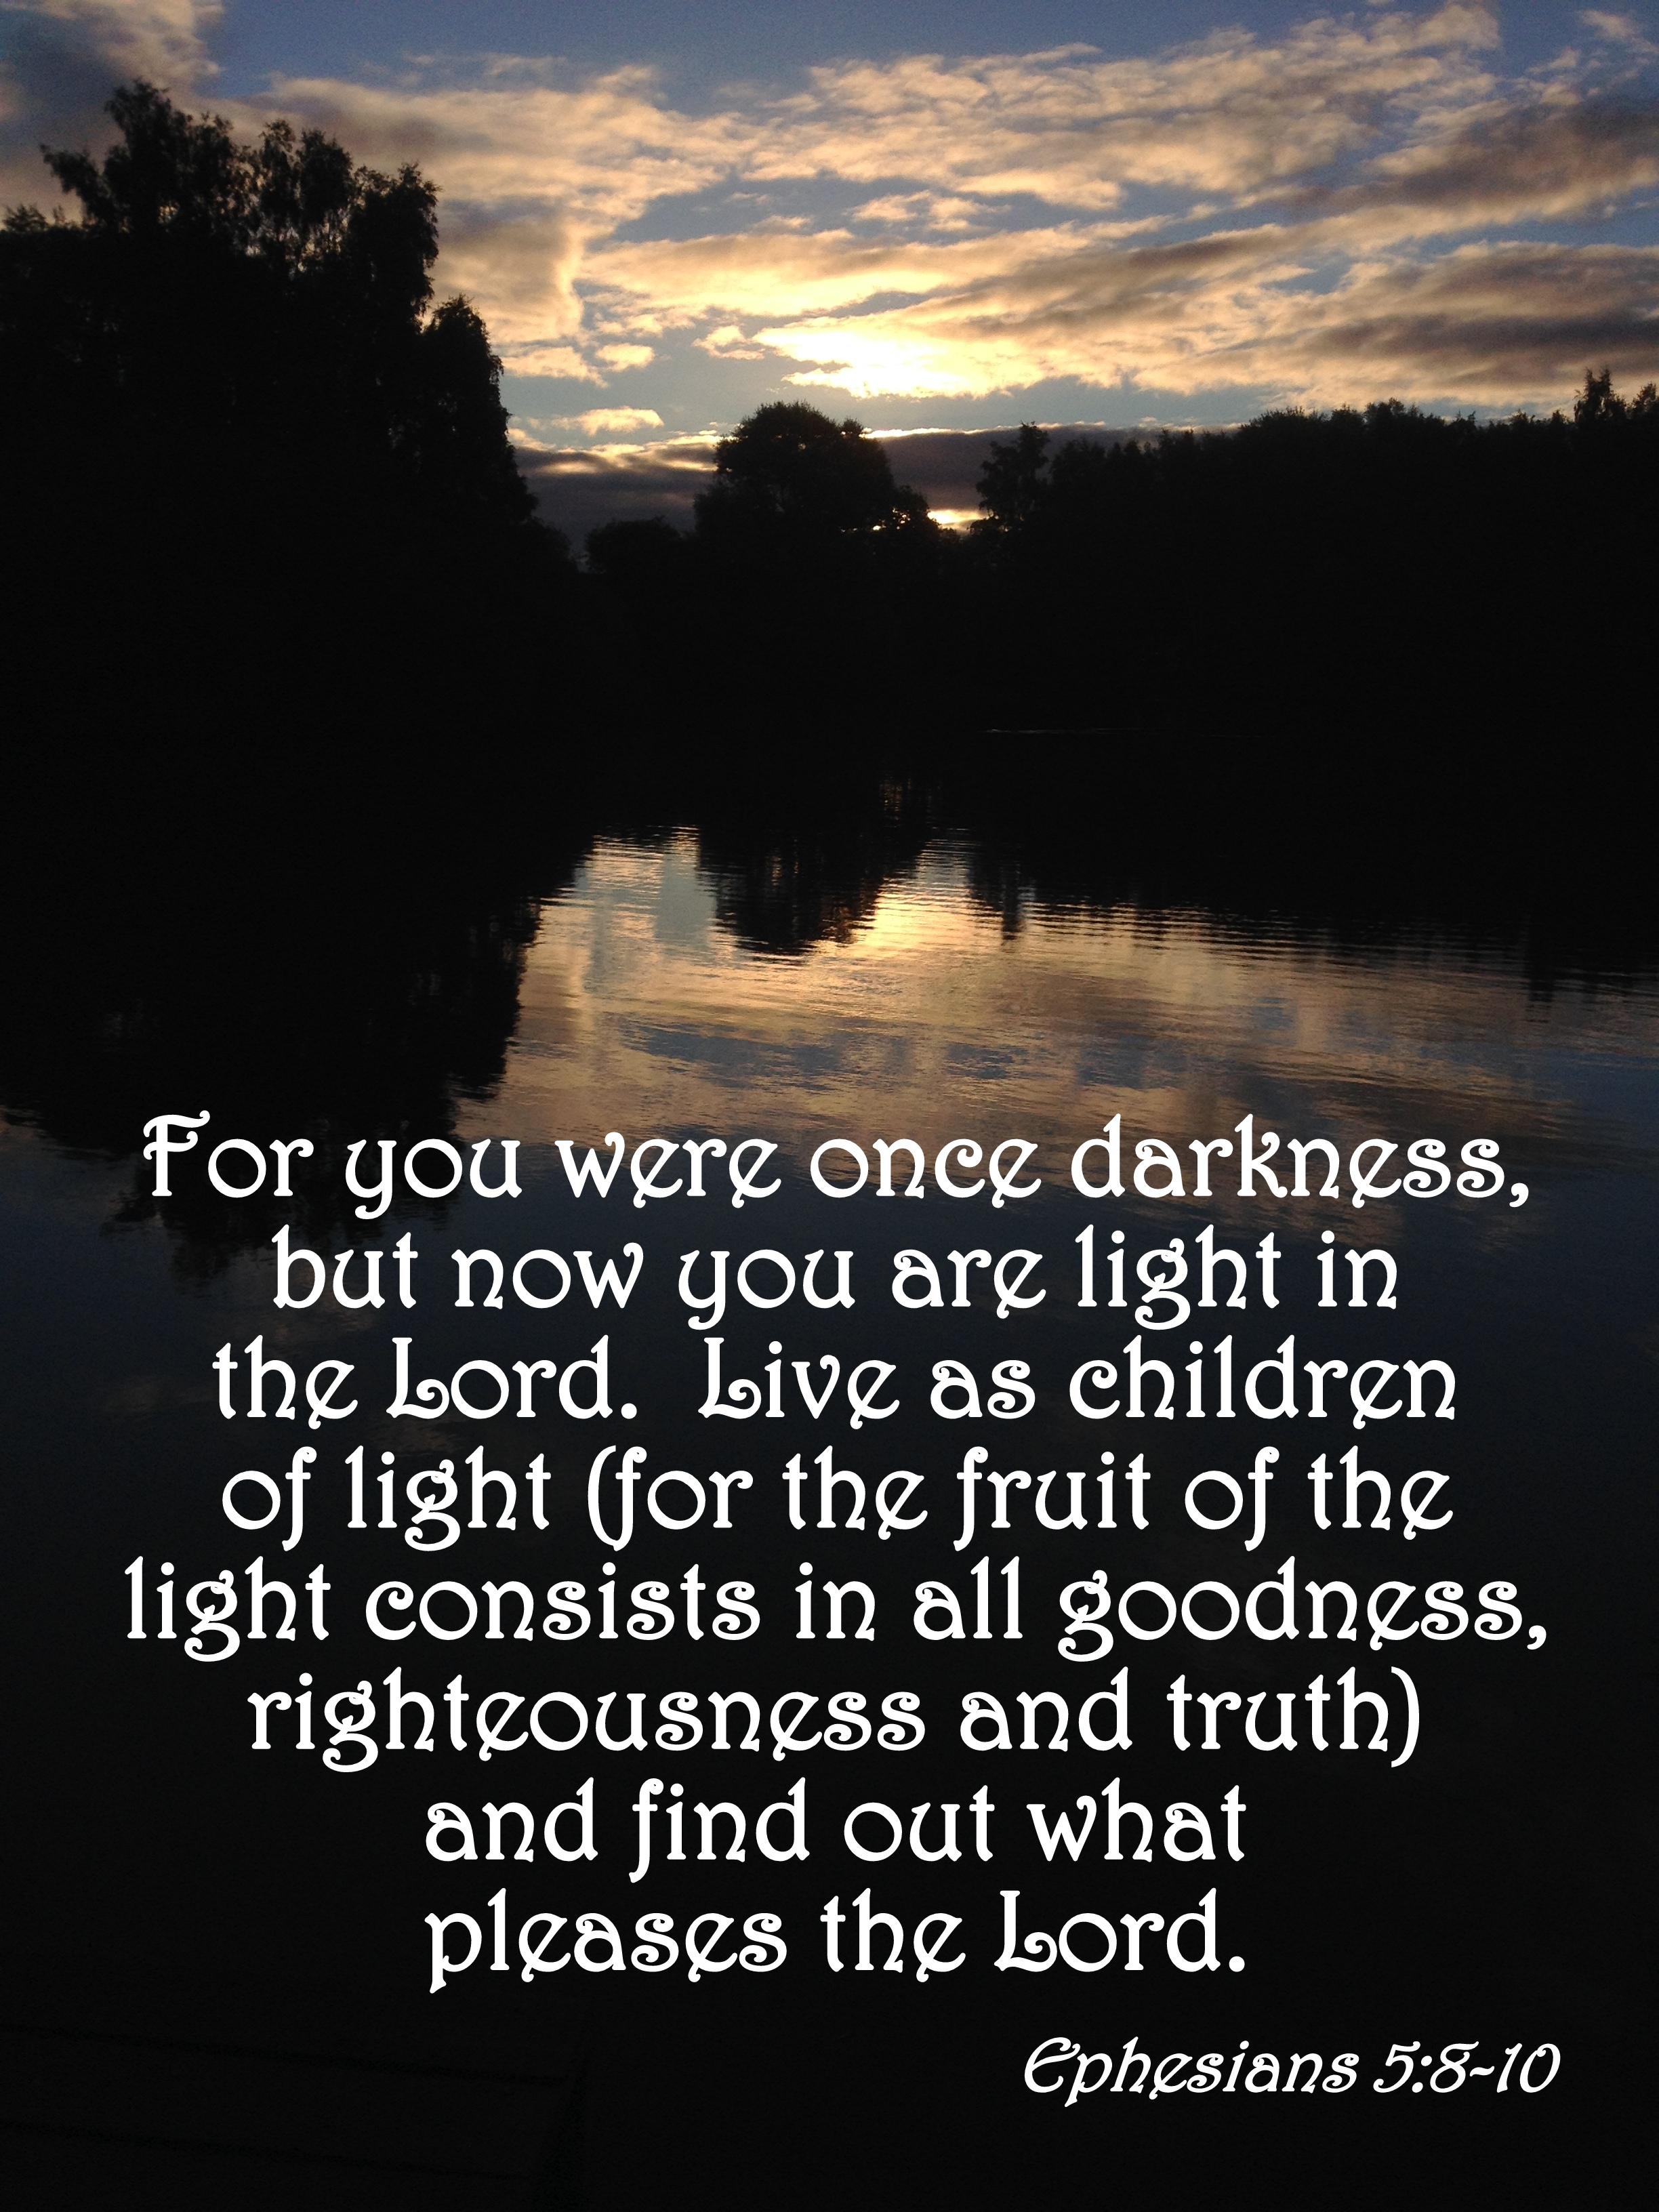 345510602632358187 further 10 22 14 Shine together with 03 also Ponderize This Let Your Light So Shine furthermore Verse Of The Day Ephesians 58 10. on let your light shine kjv